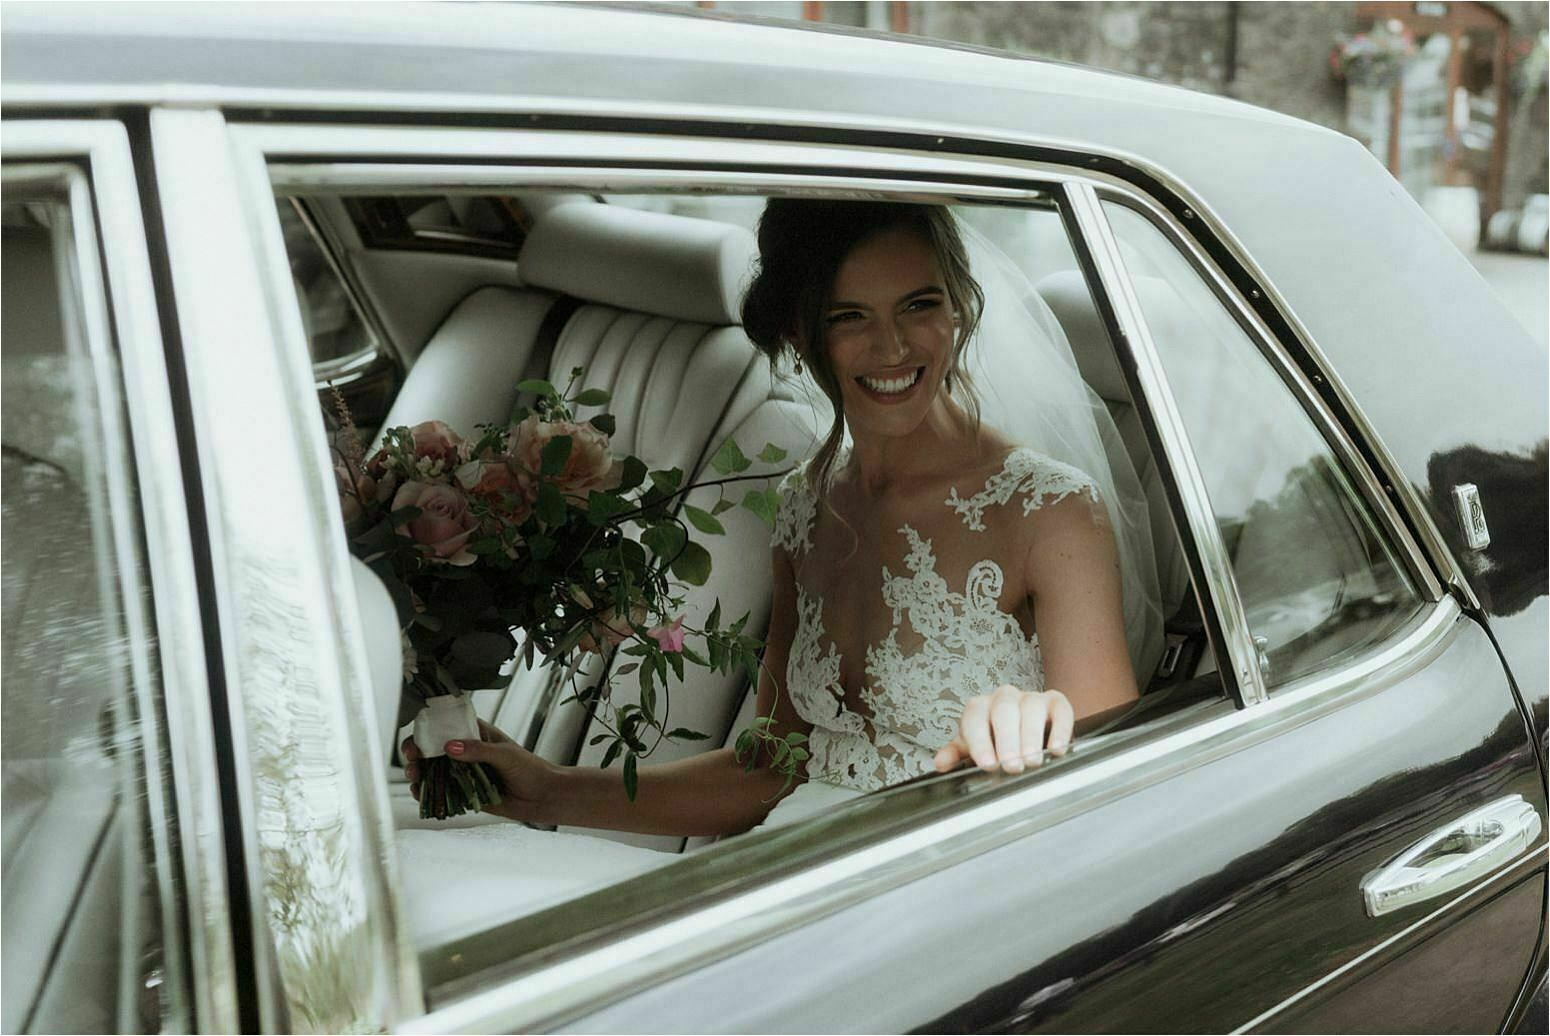 scottish wedding at bachilton barn bride arrives in car